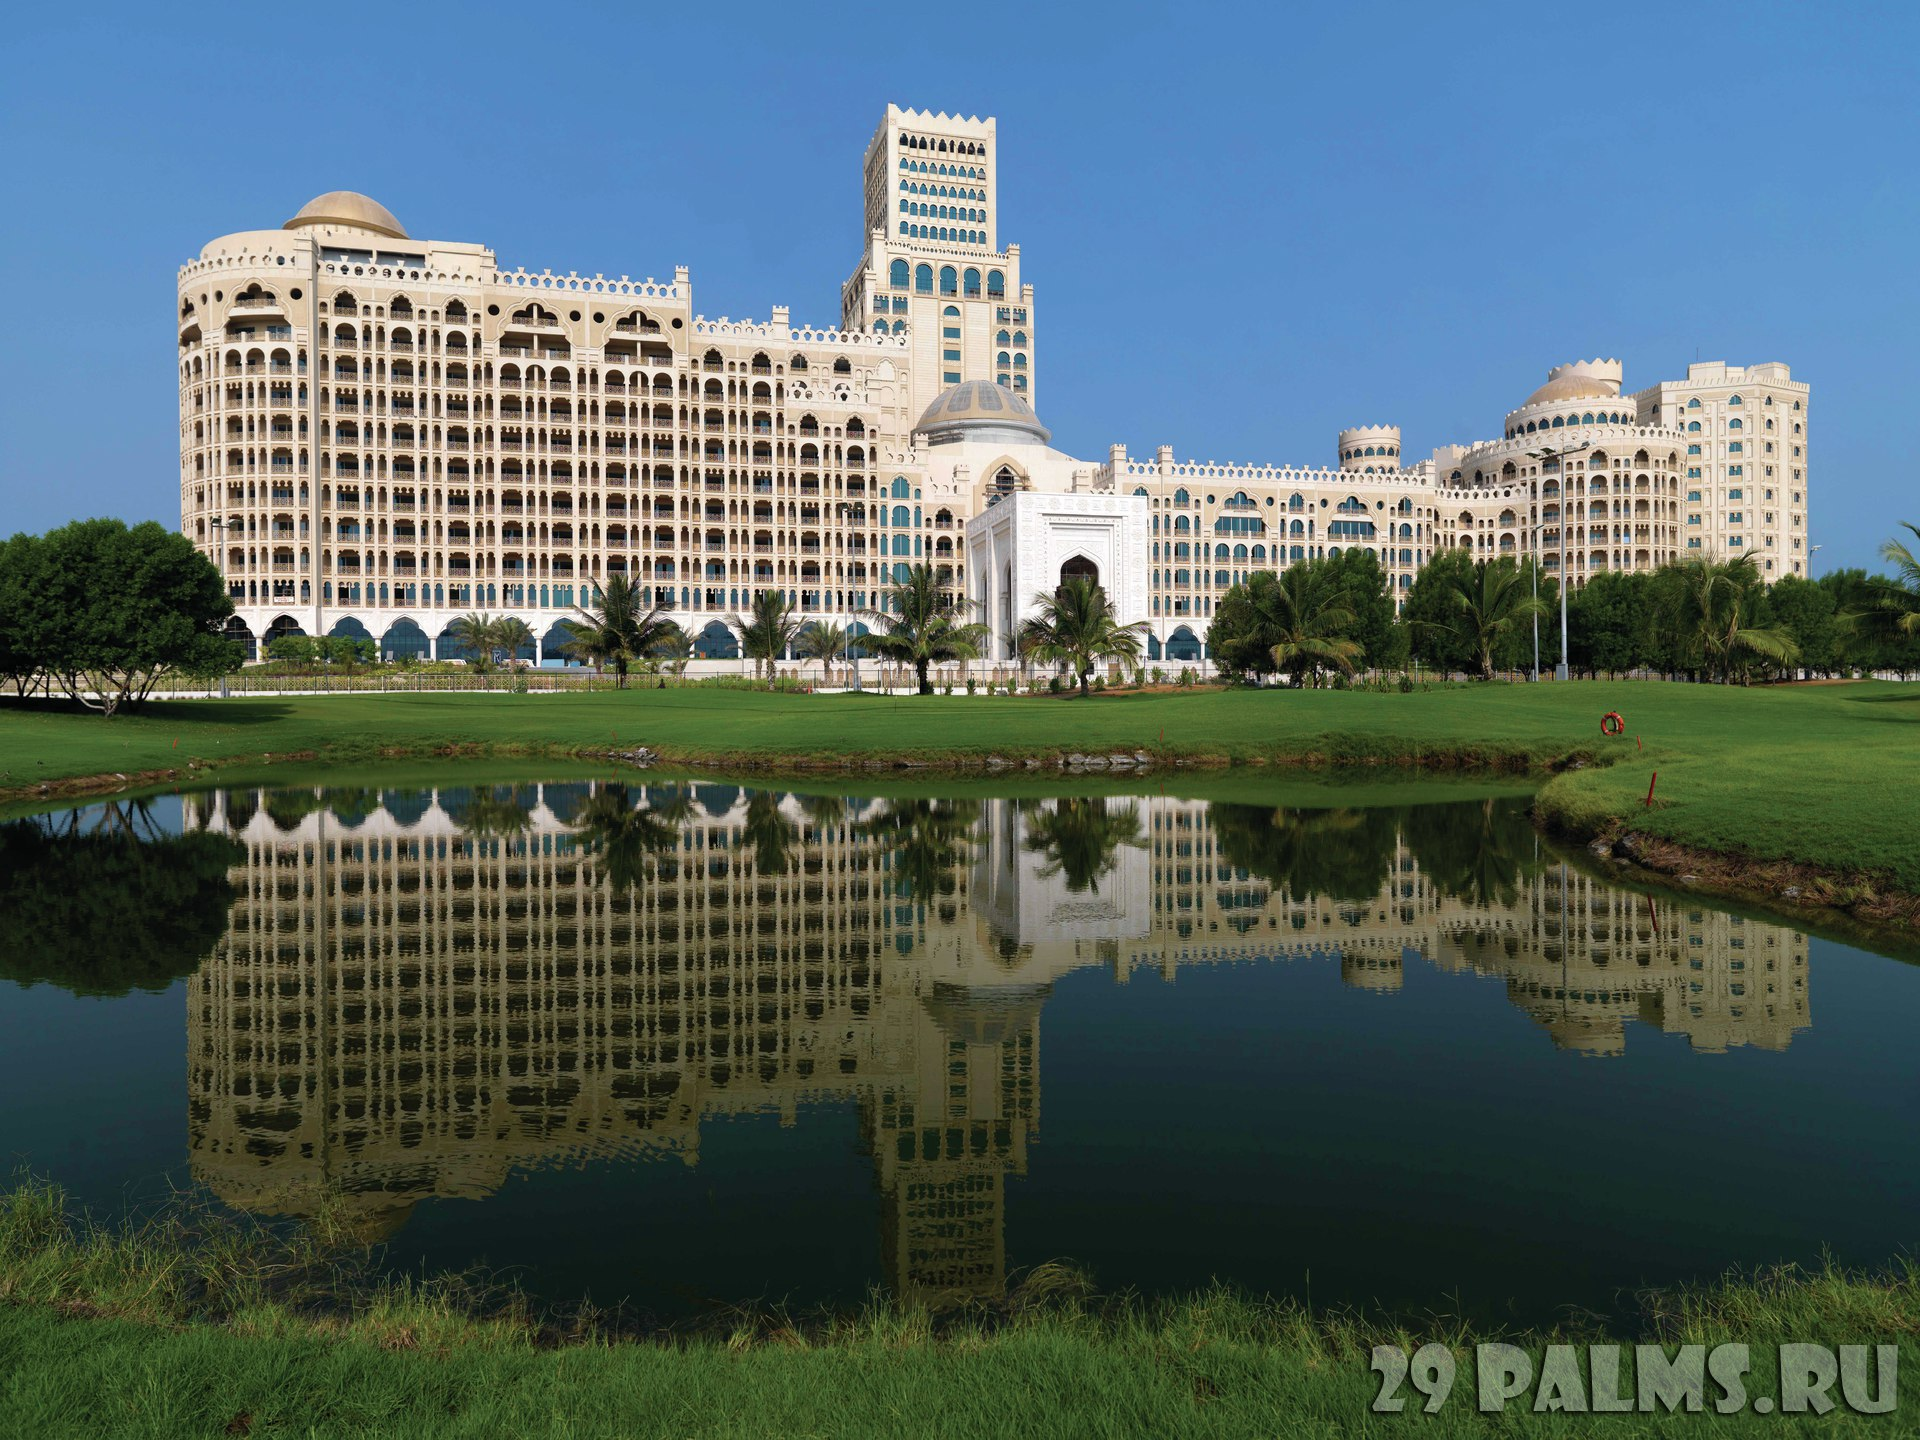 Клуб путешествий Павла Аксенова. ОАЭ. Рас-эль-Хайма. Waldorf Astoria Ras al Khaimah. Exterior from golf course